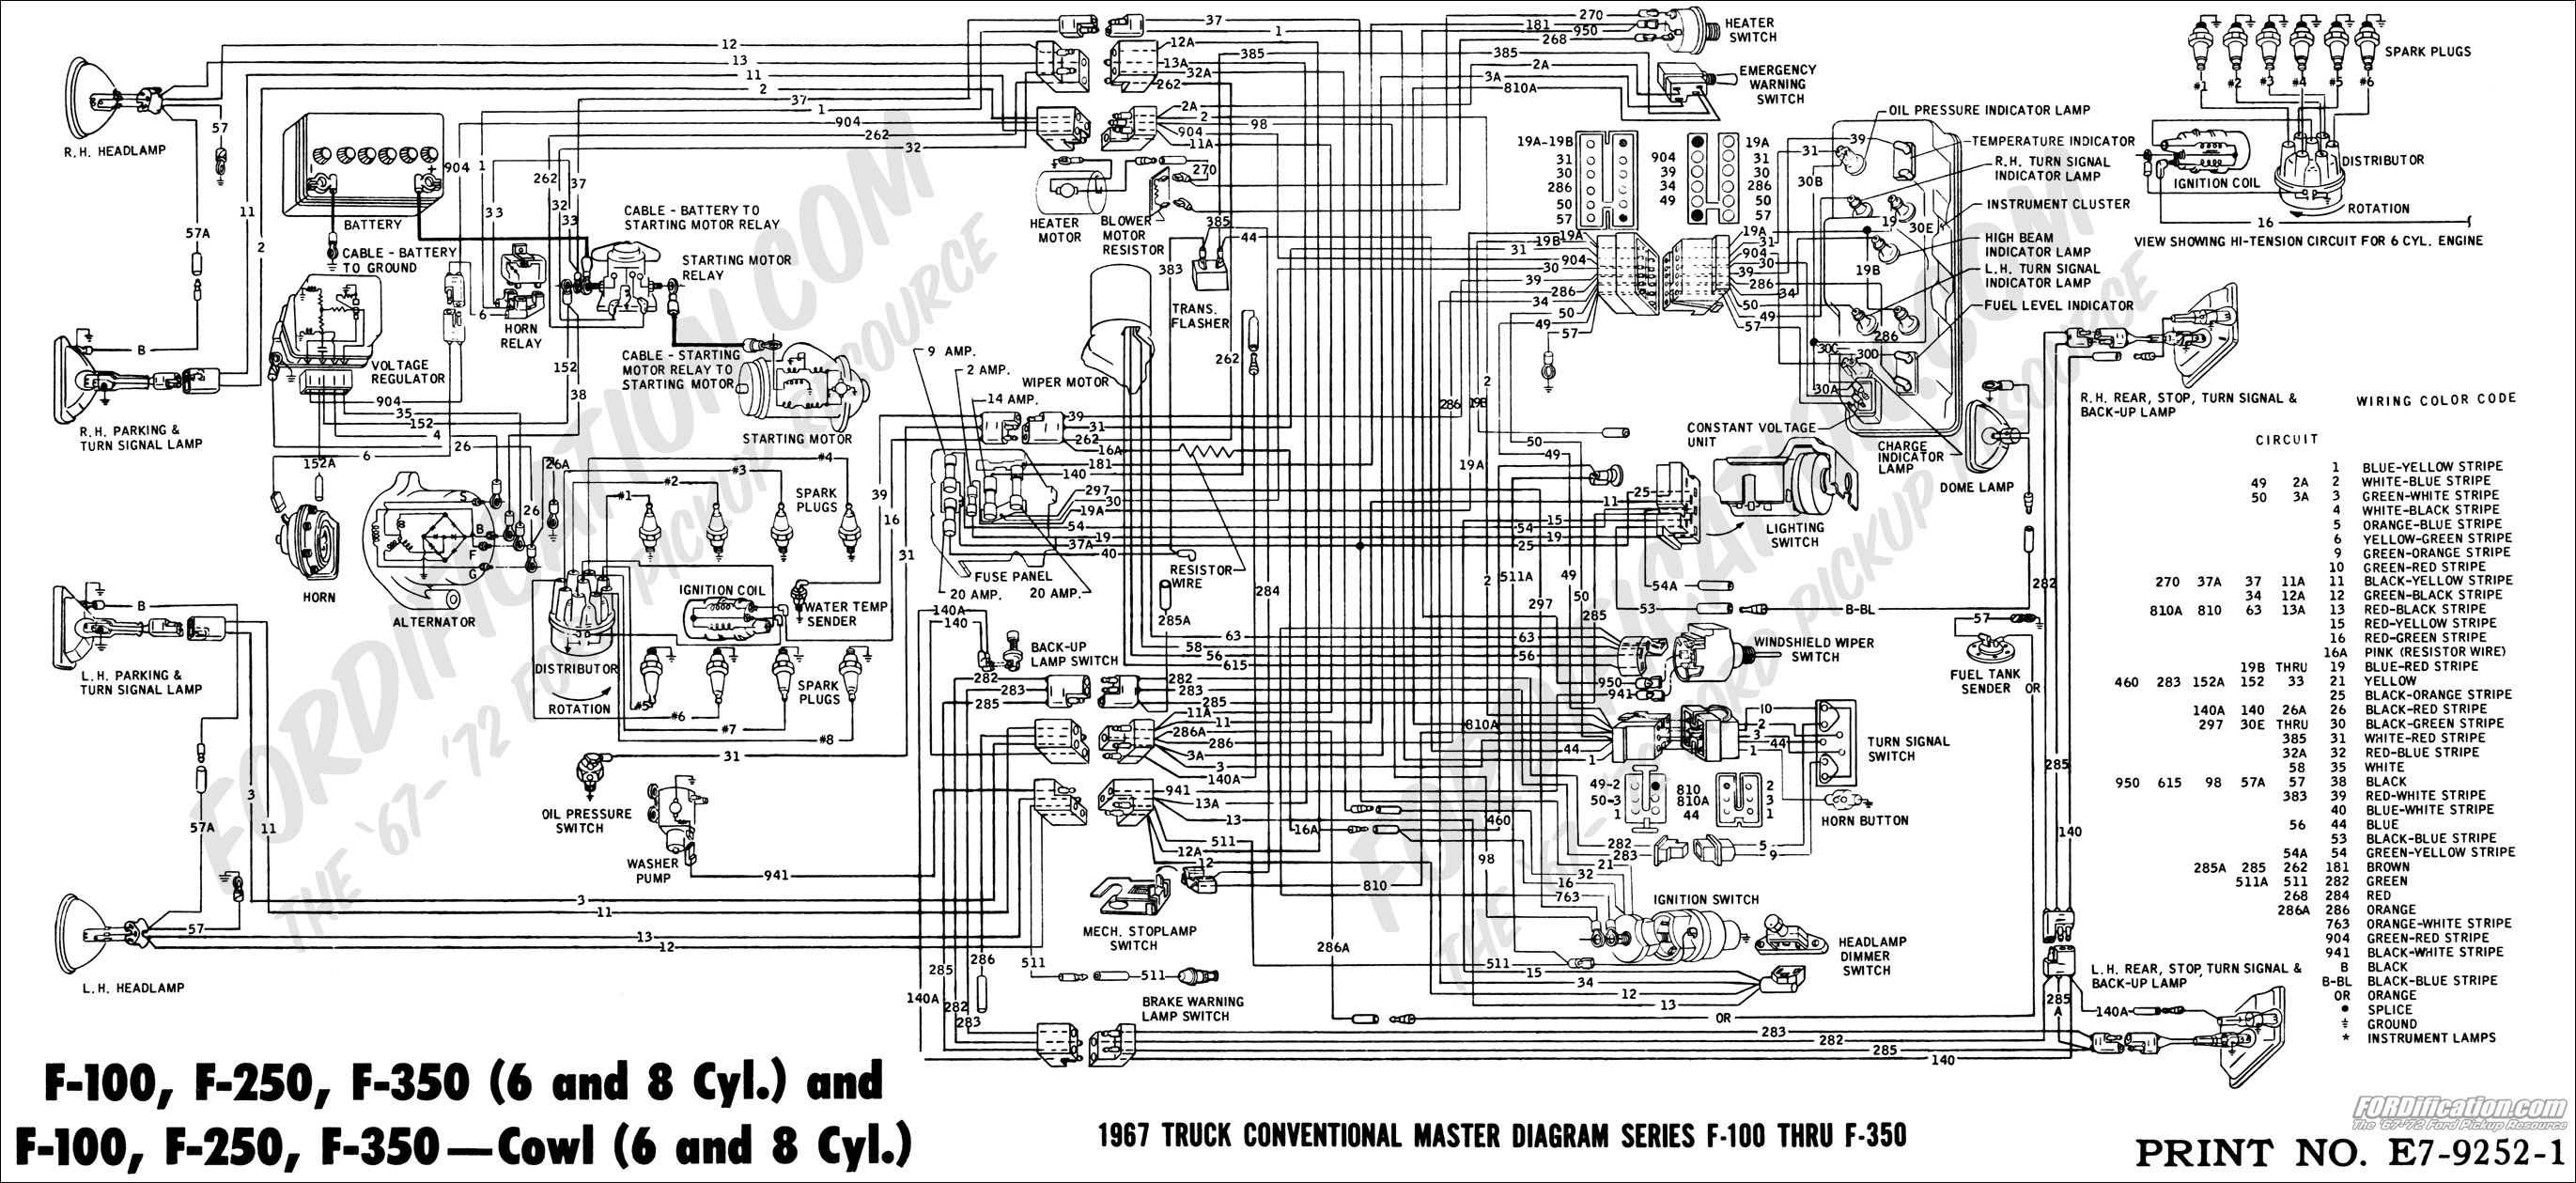 04 Ford Wiring Diagram Electrical Diagrams Detailed Schematics Truck Schematic 2009 Ranger